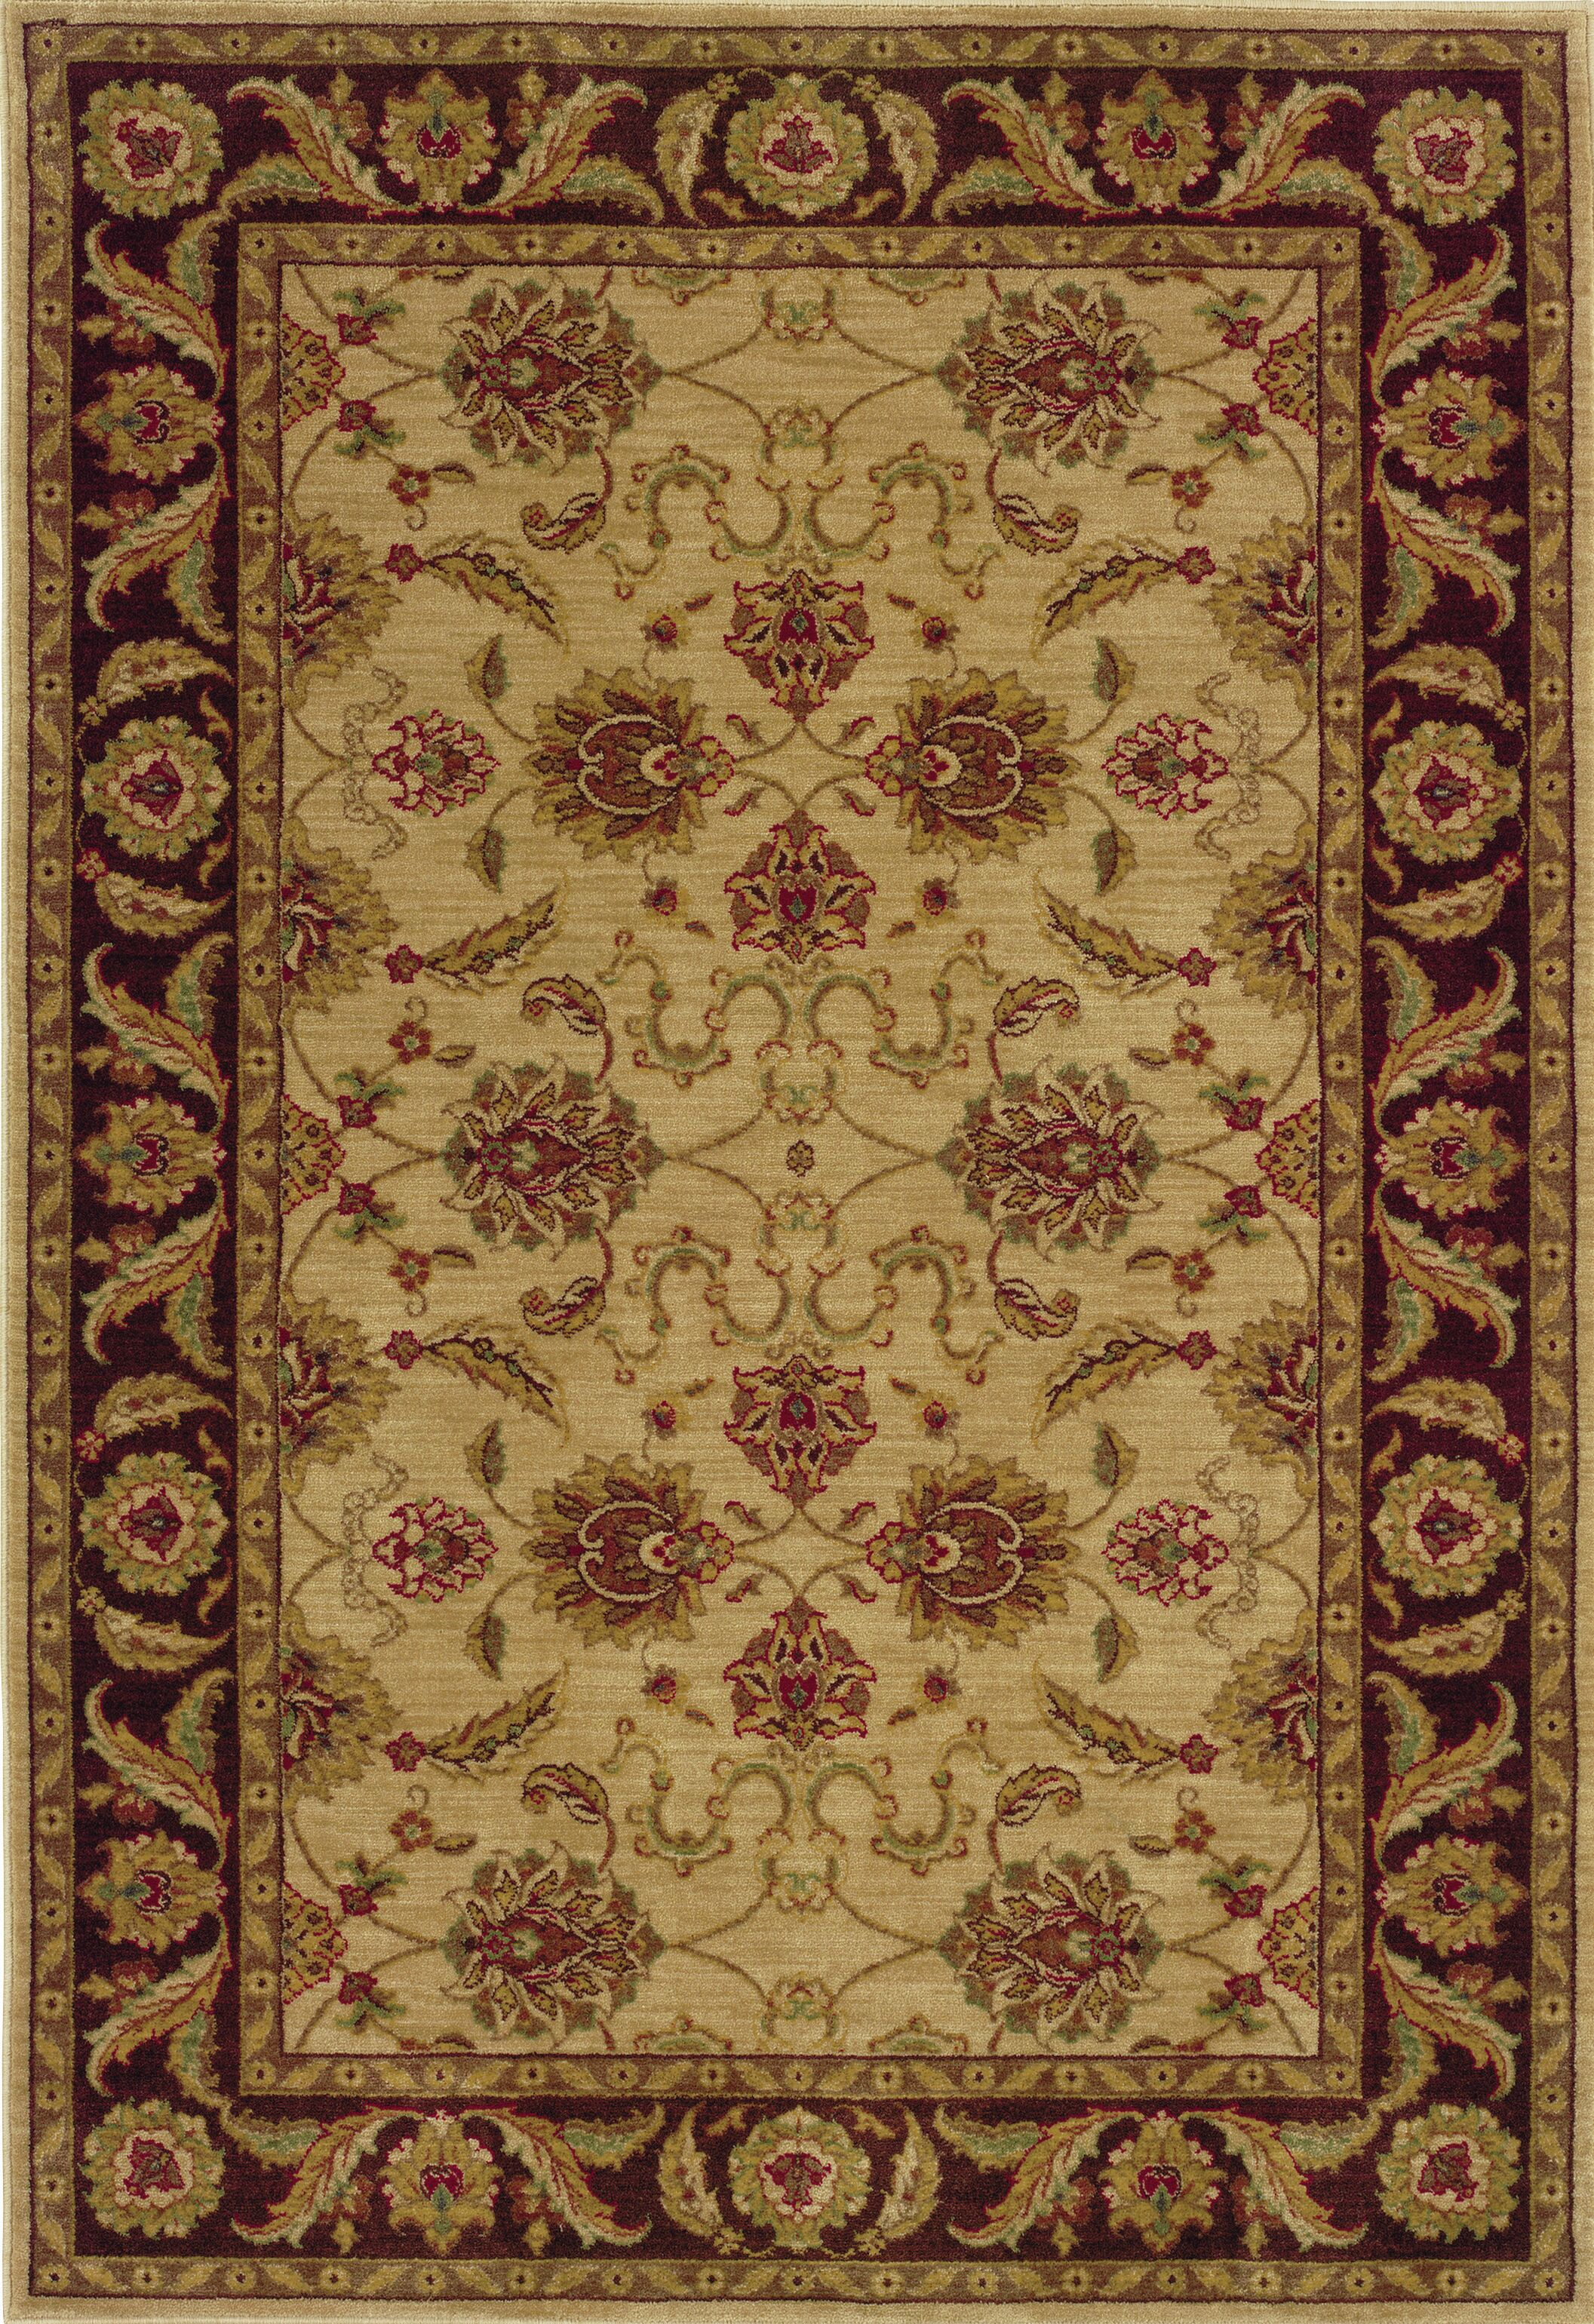 Barrows Beige/Brown Area Rug Rug Size: Rectangle 6'7